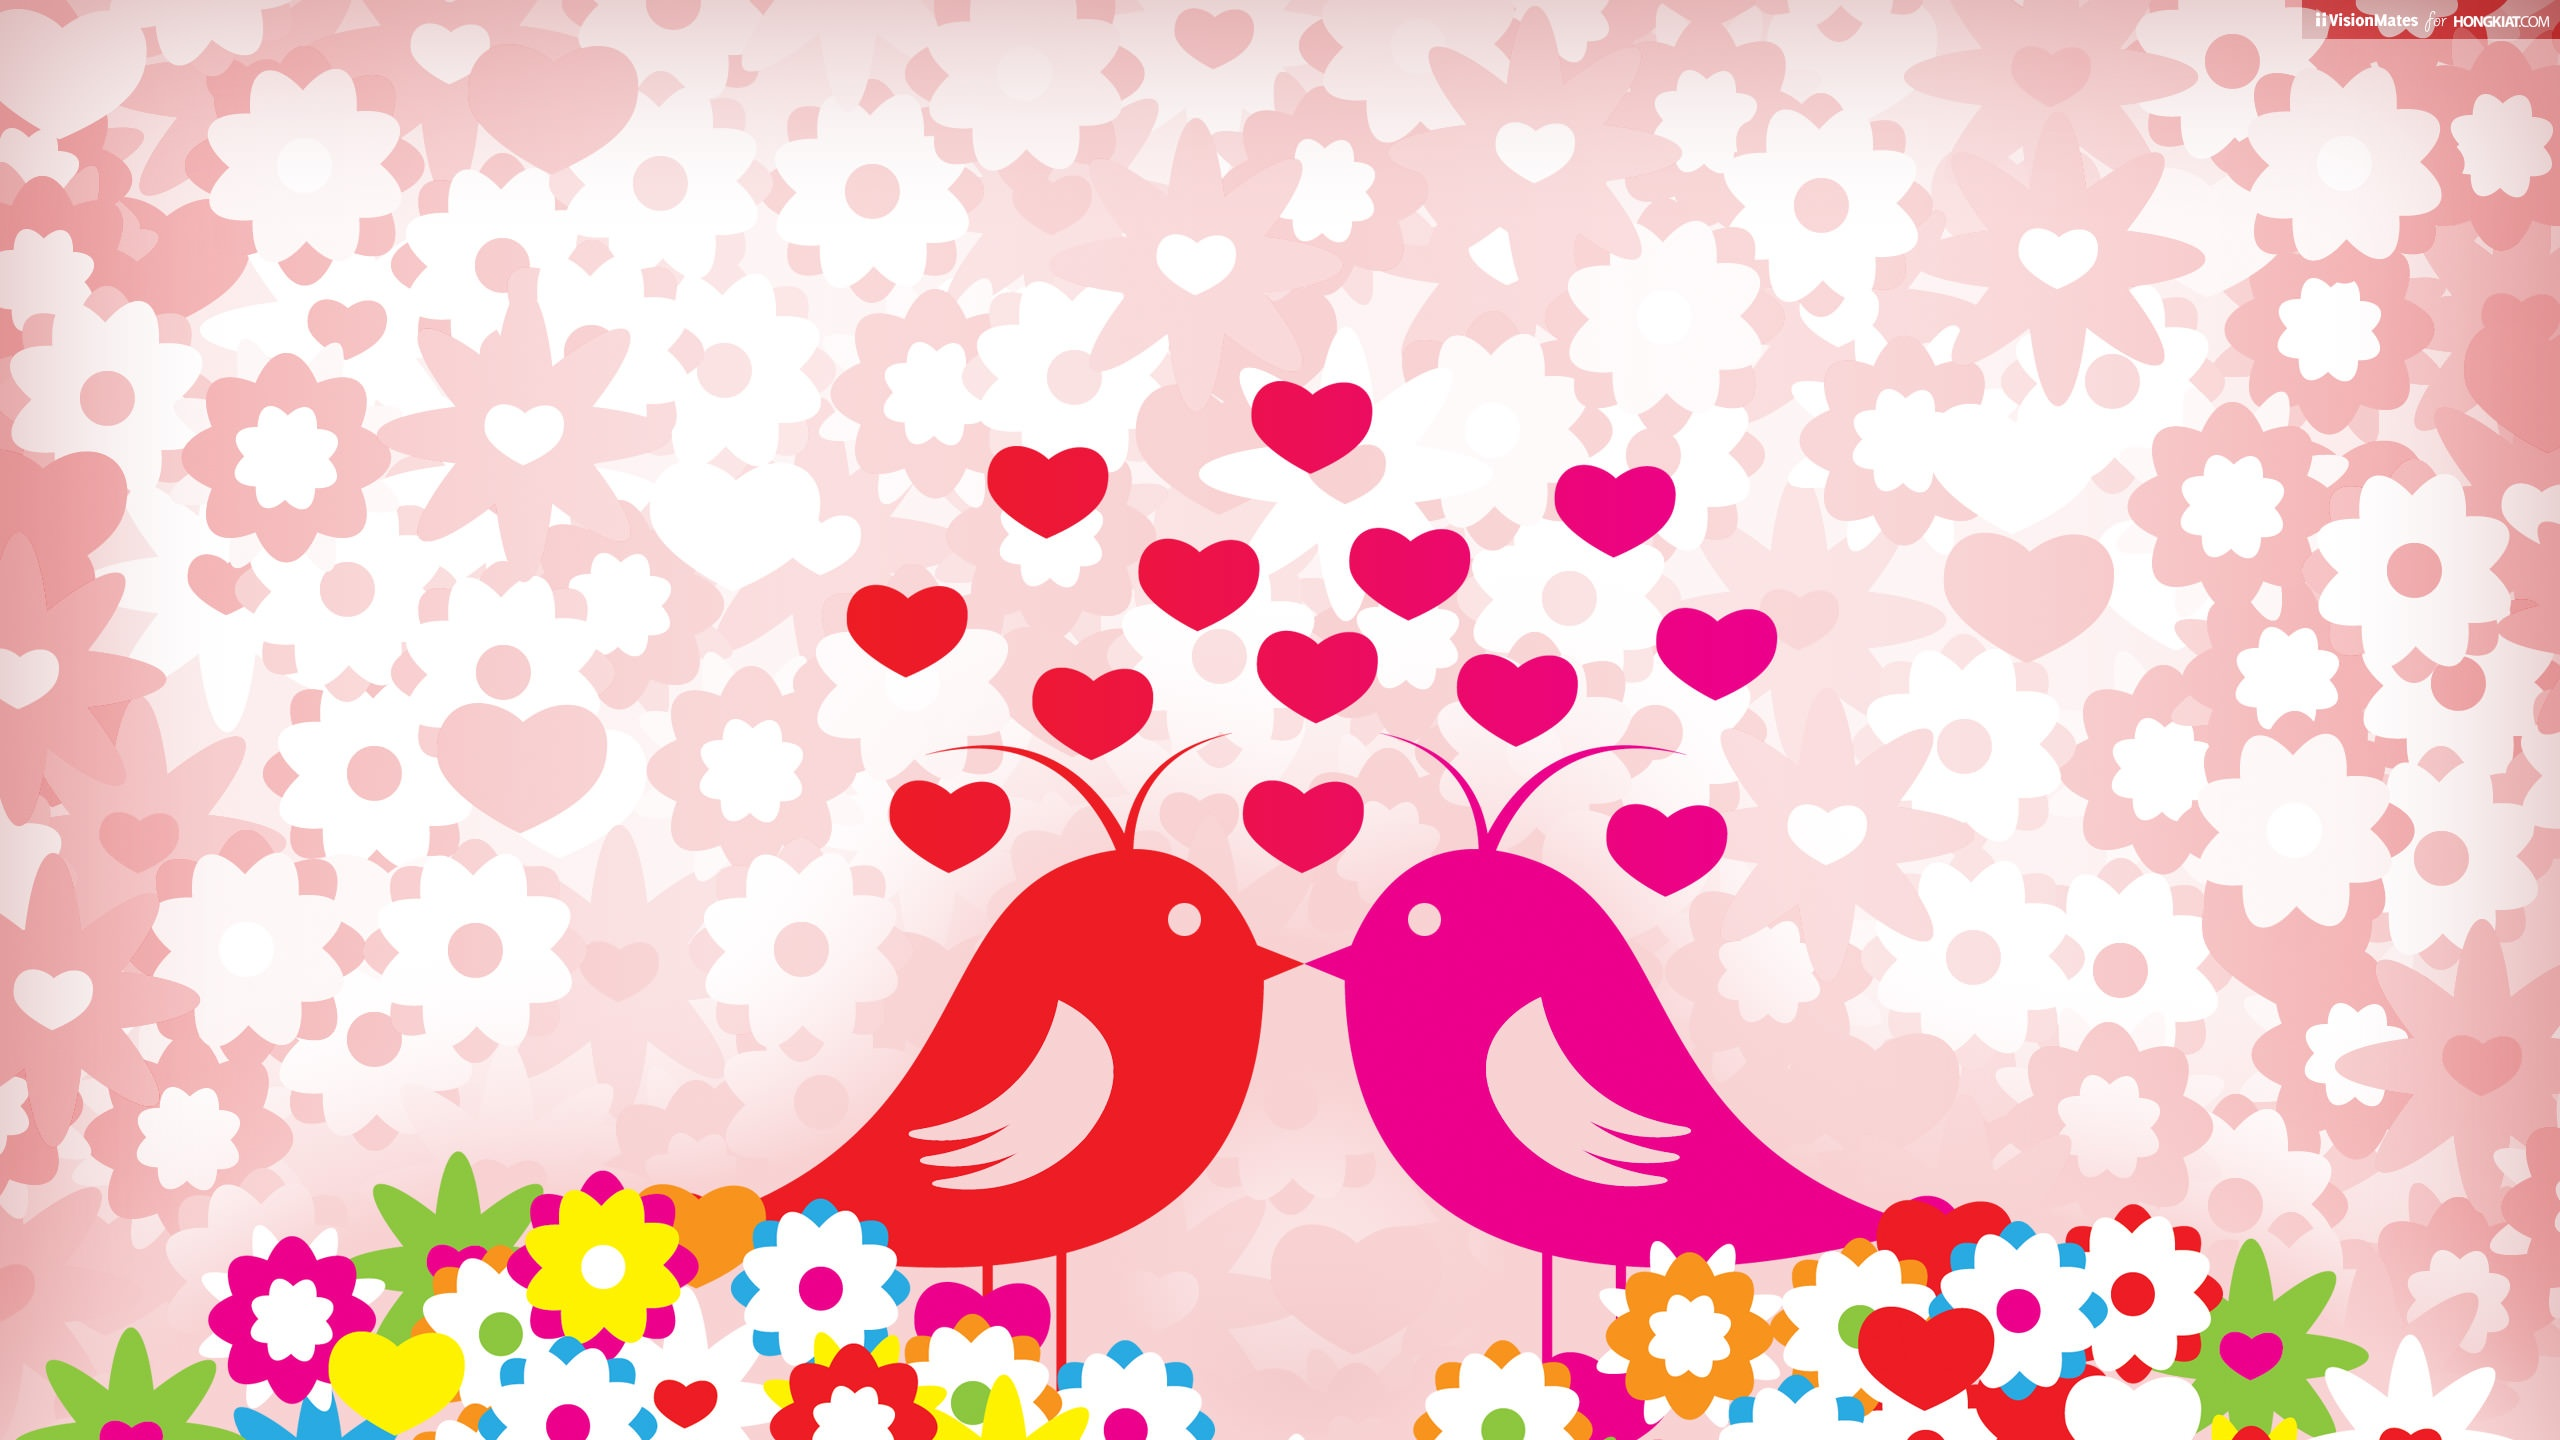 Wallpaper download in love - Love Birds